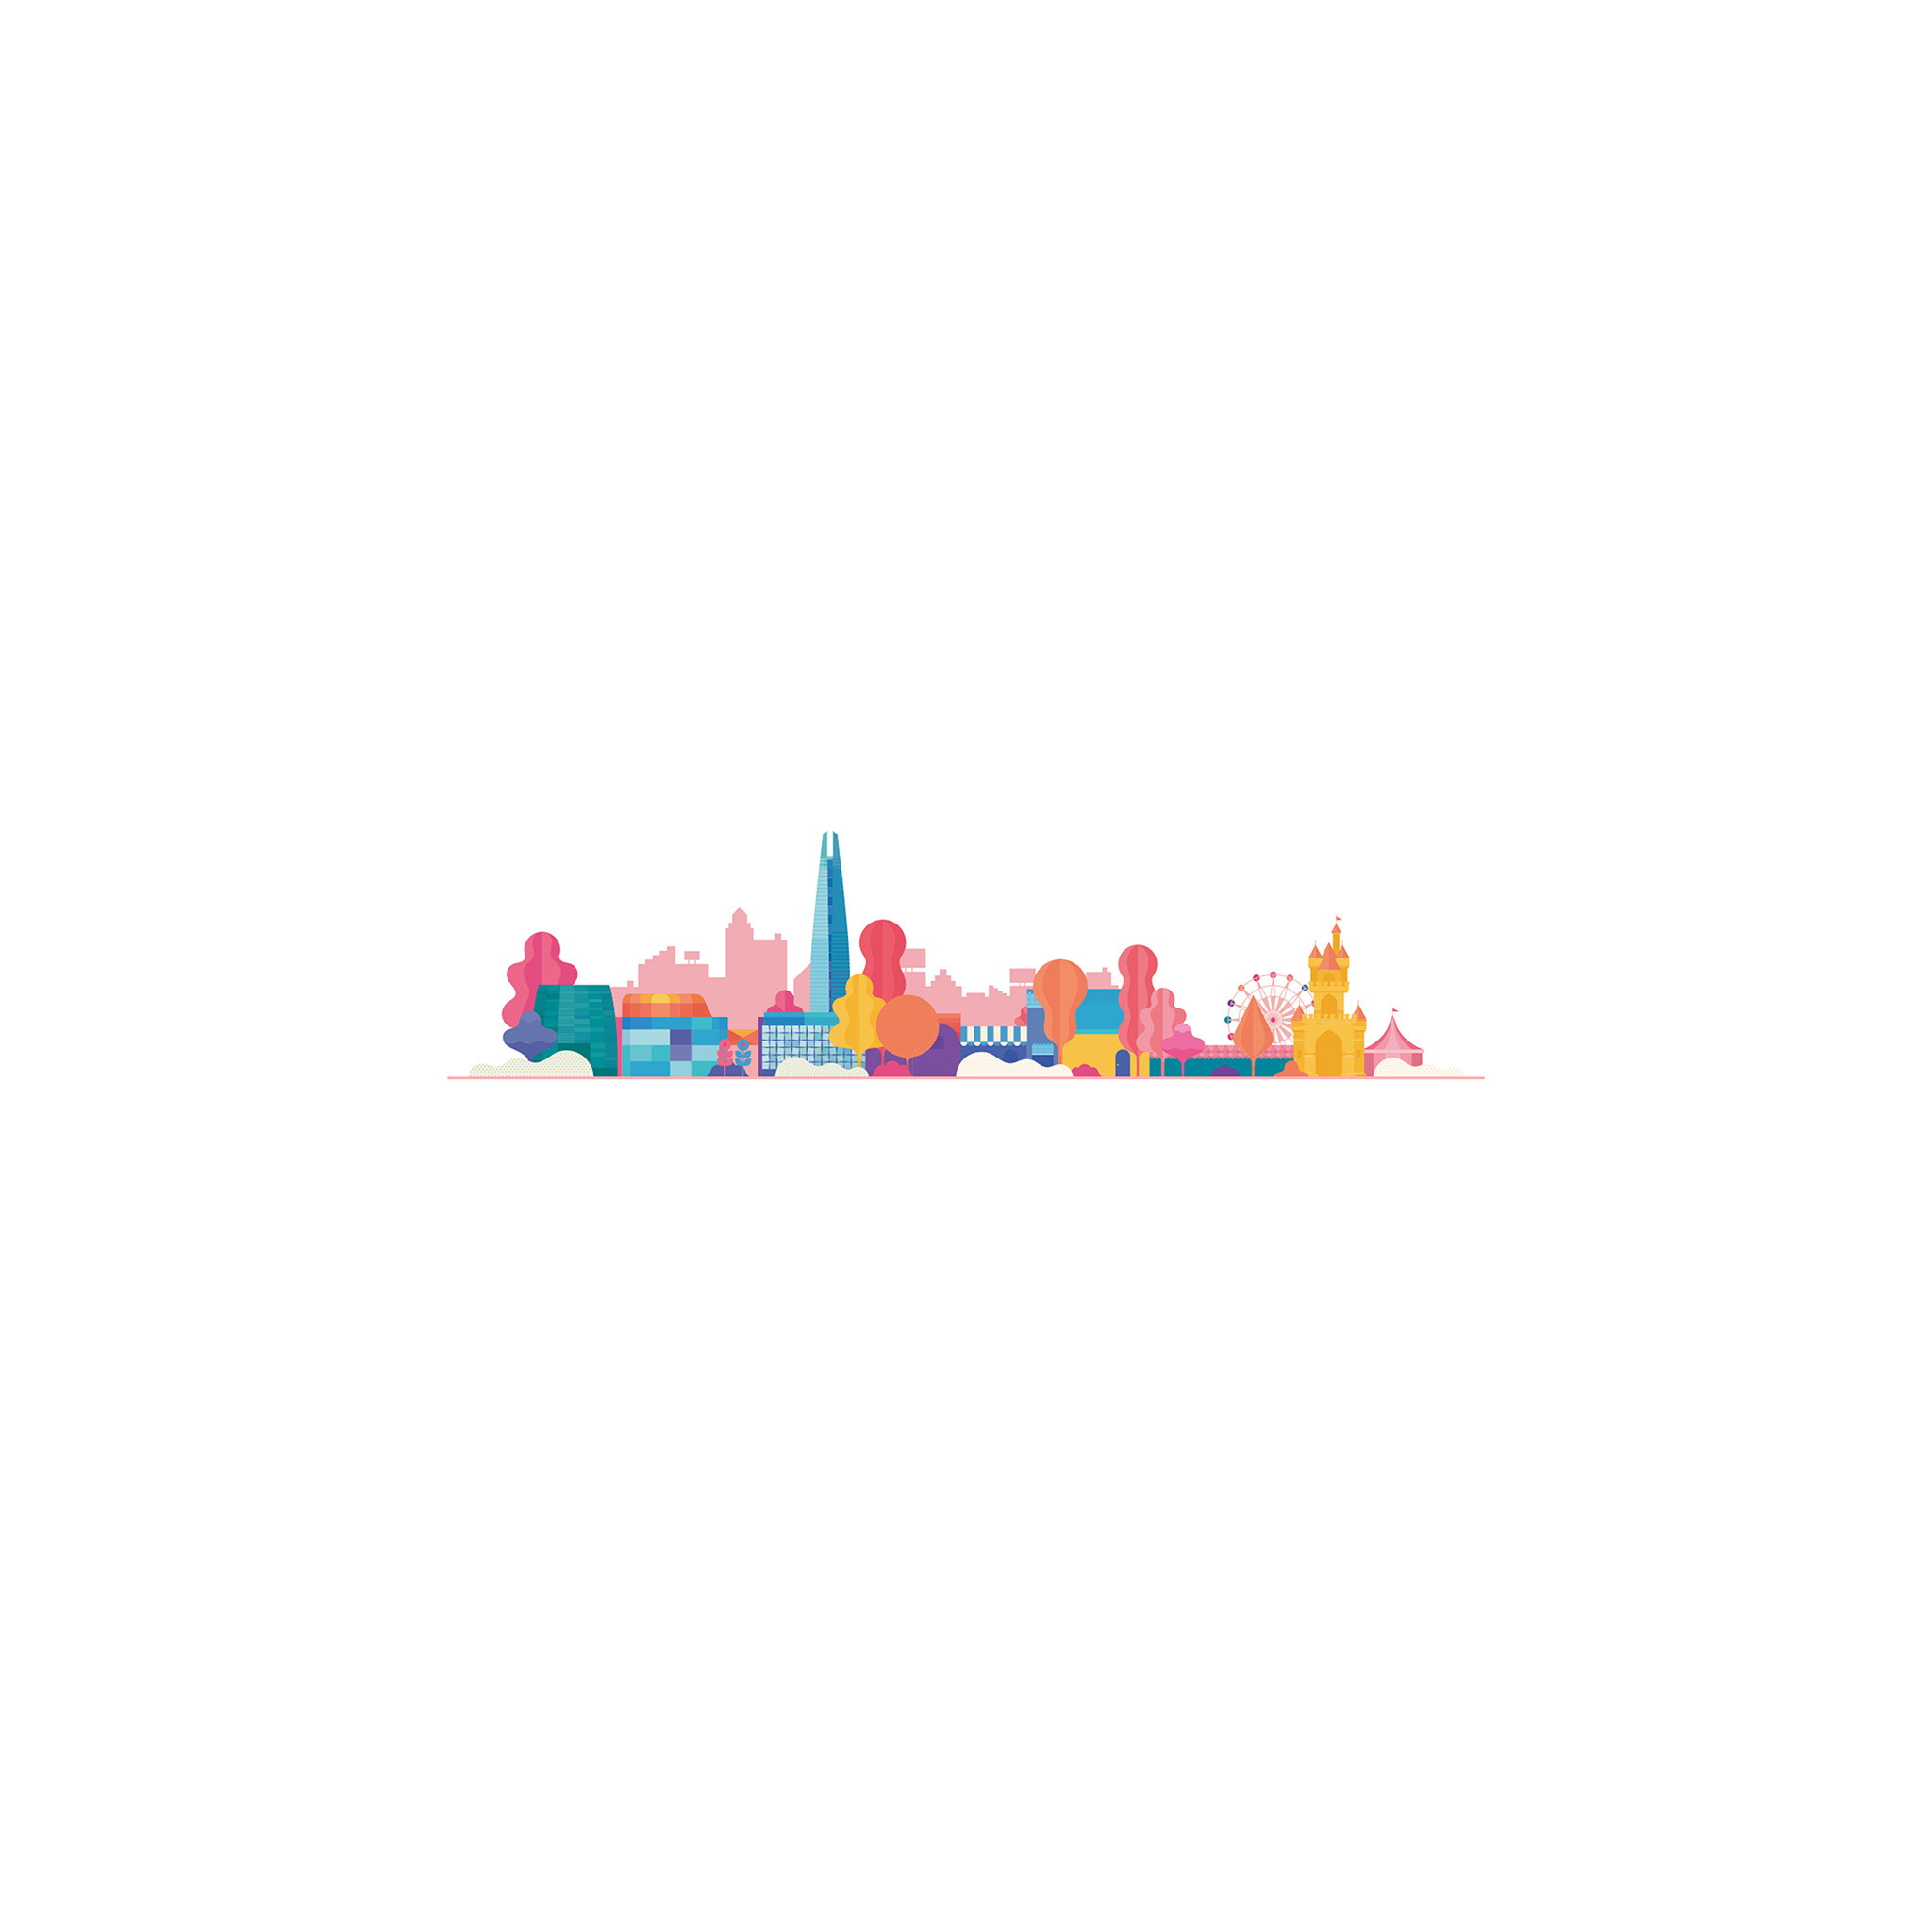 Wallpaper Iphone Minimalist: Ba13-city-cute-white-illustration-art-minimal-wallpaper